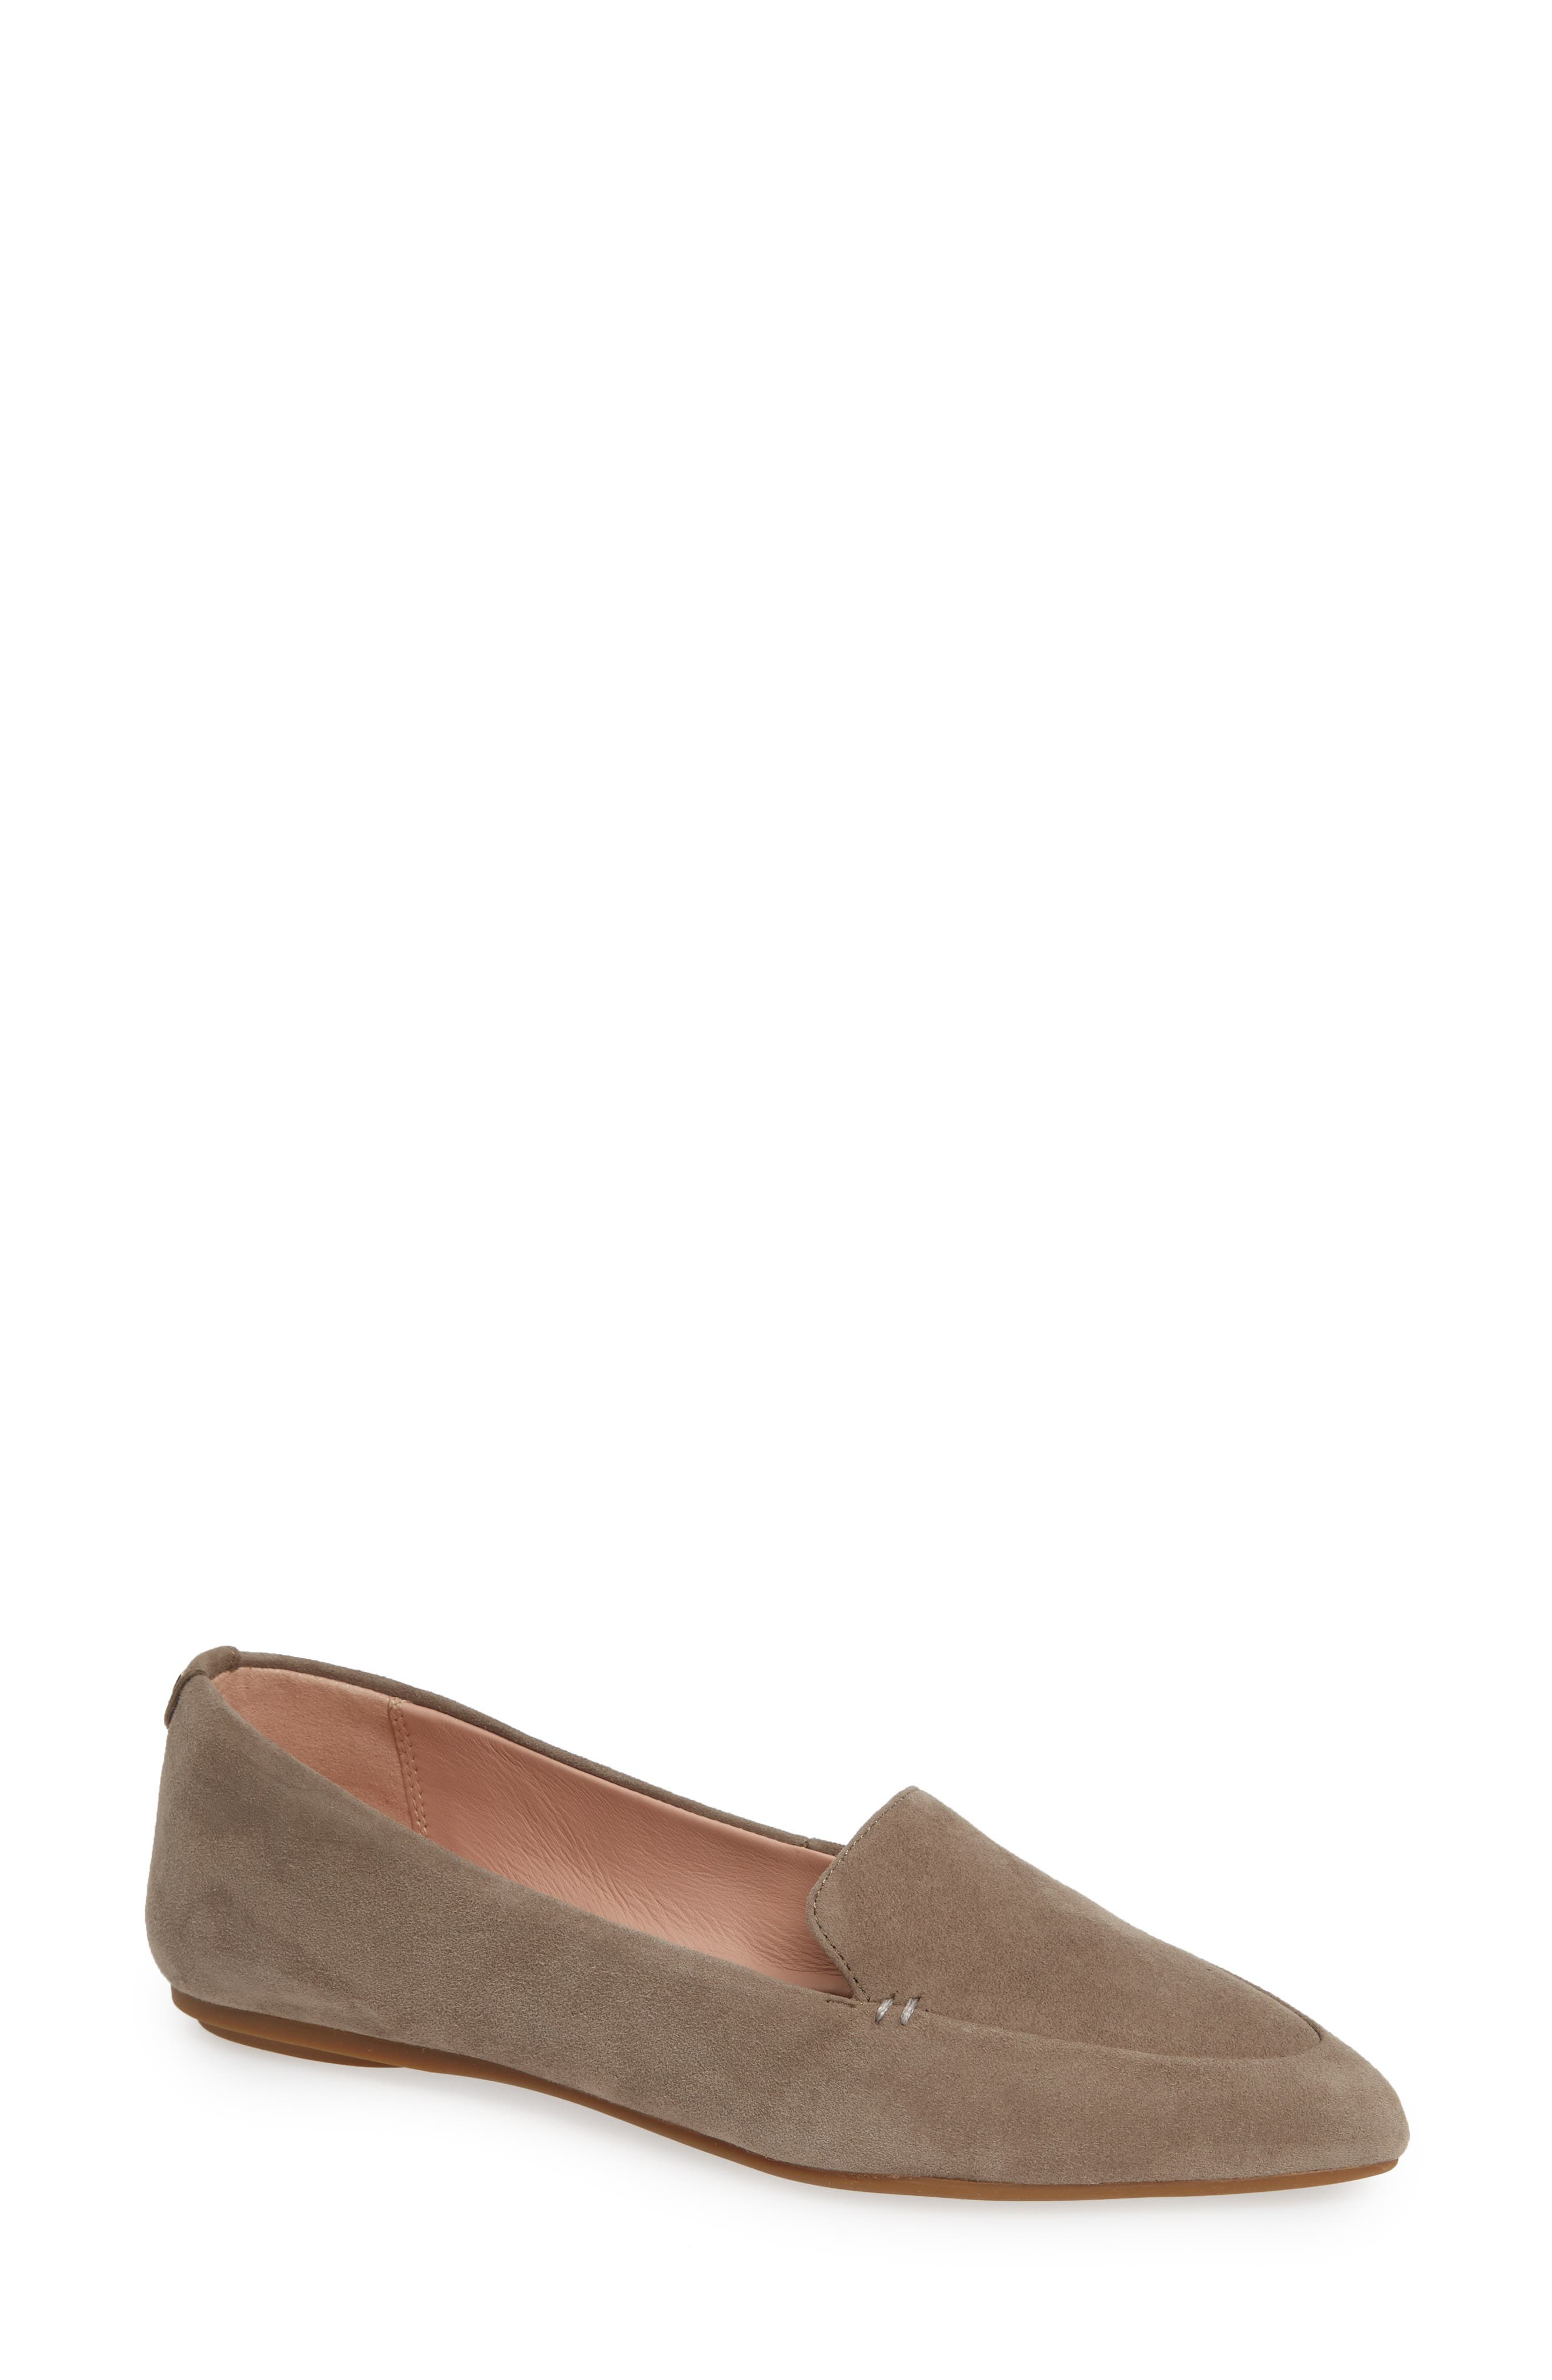 TARYN ROSE, Faye Pointy Toe Loafer, Main thumbnail 1, color, CLAY SUEDE